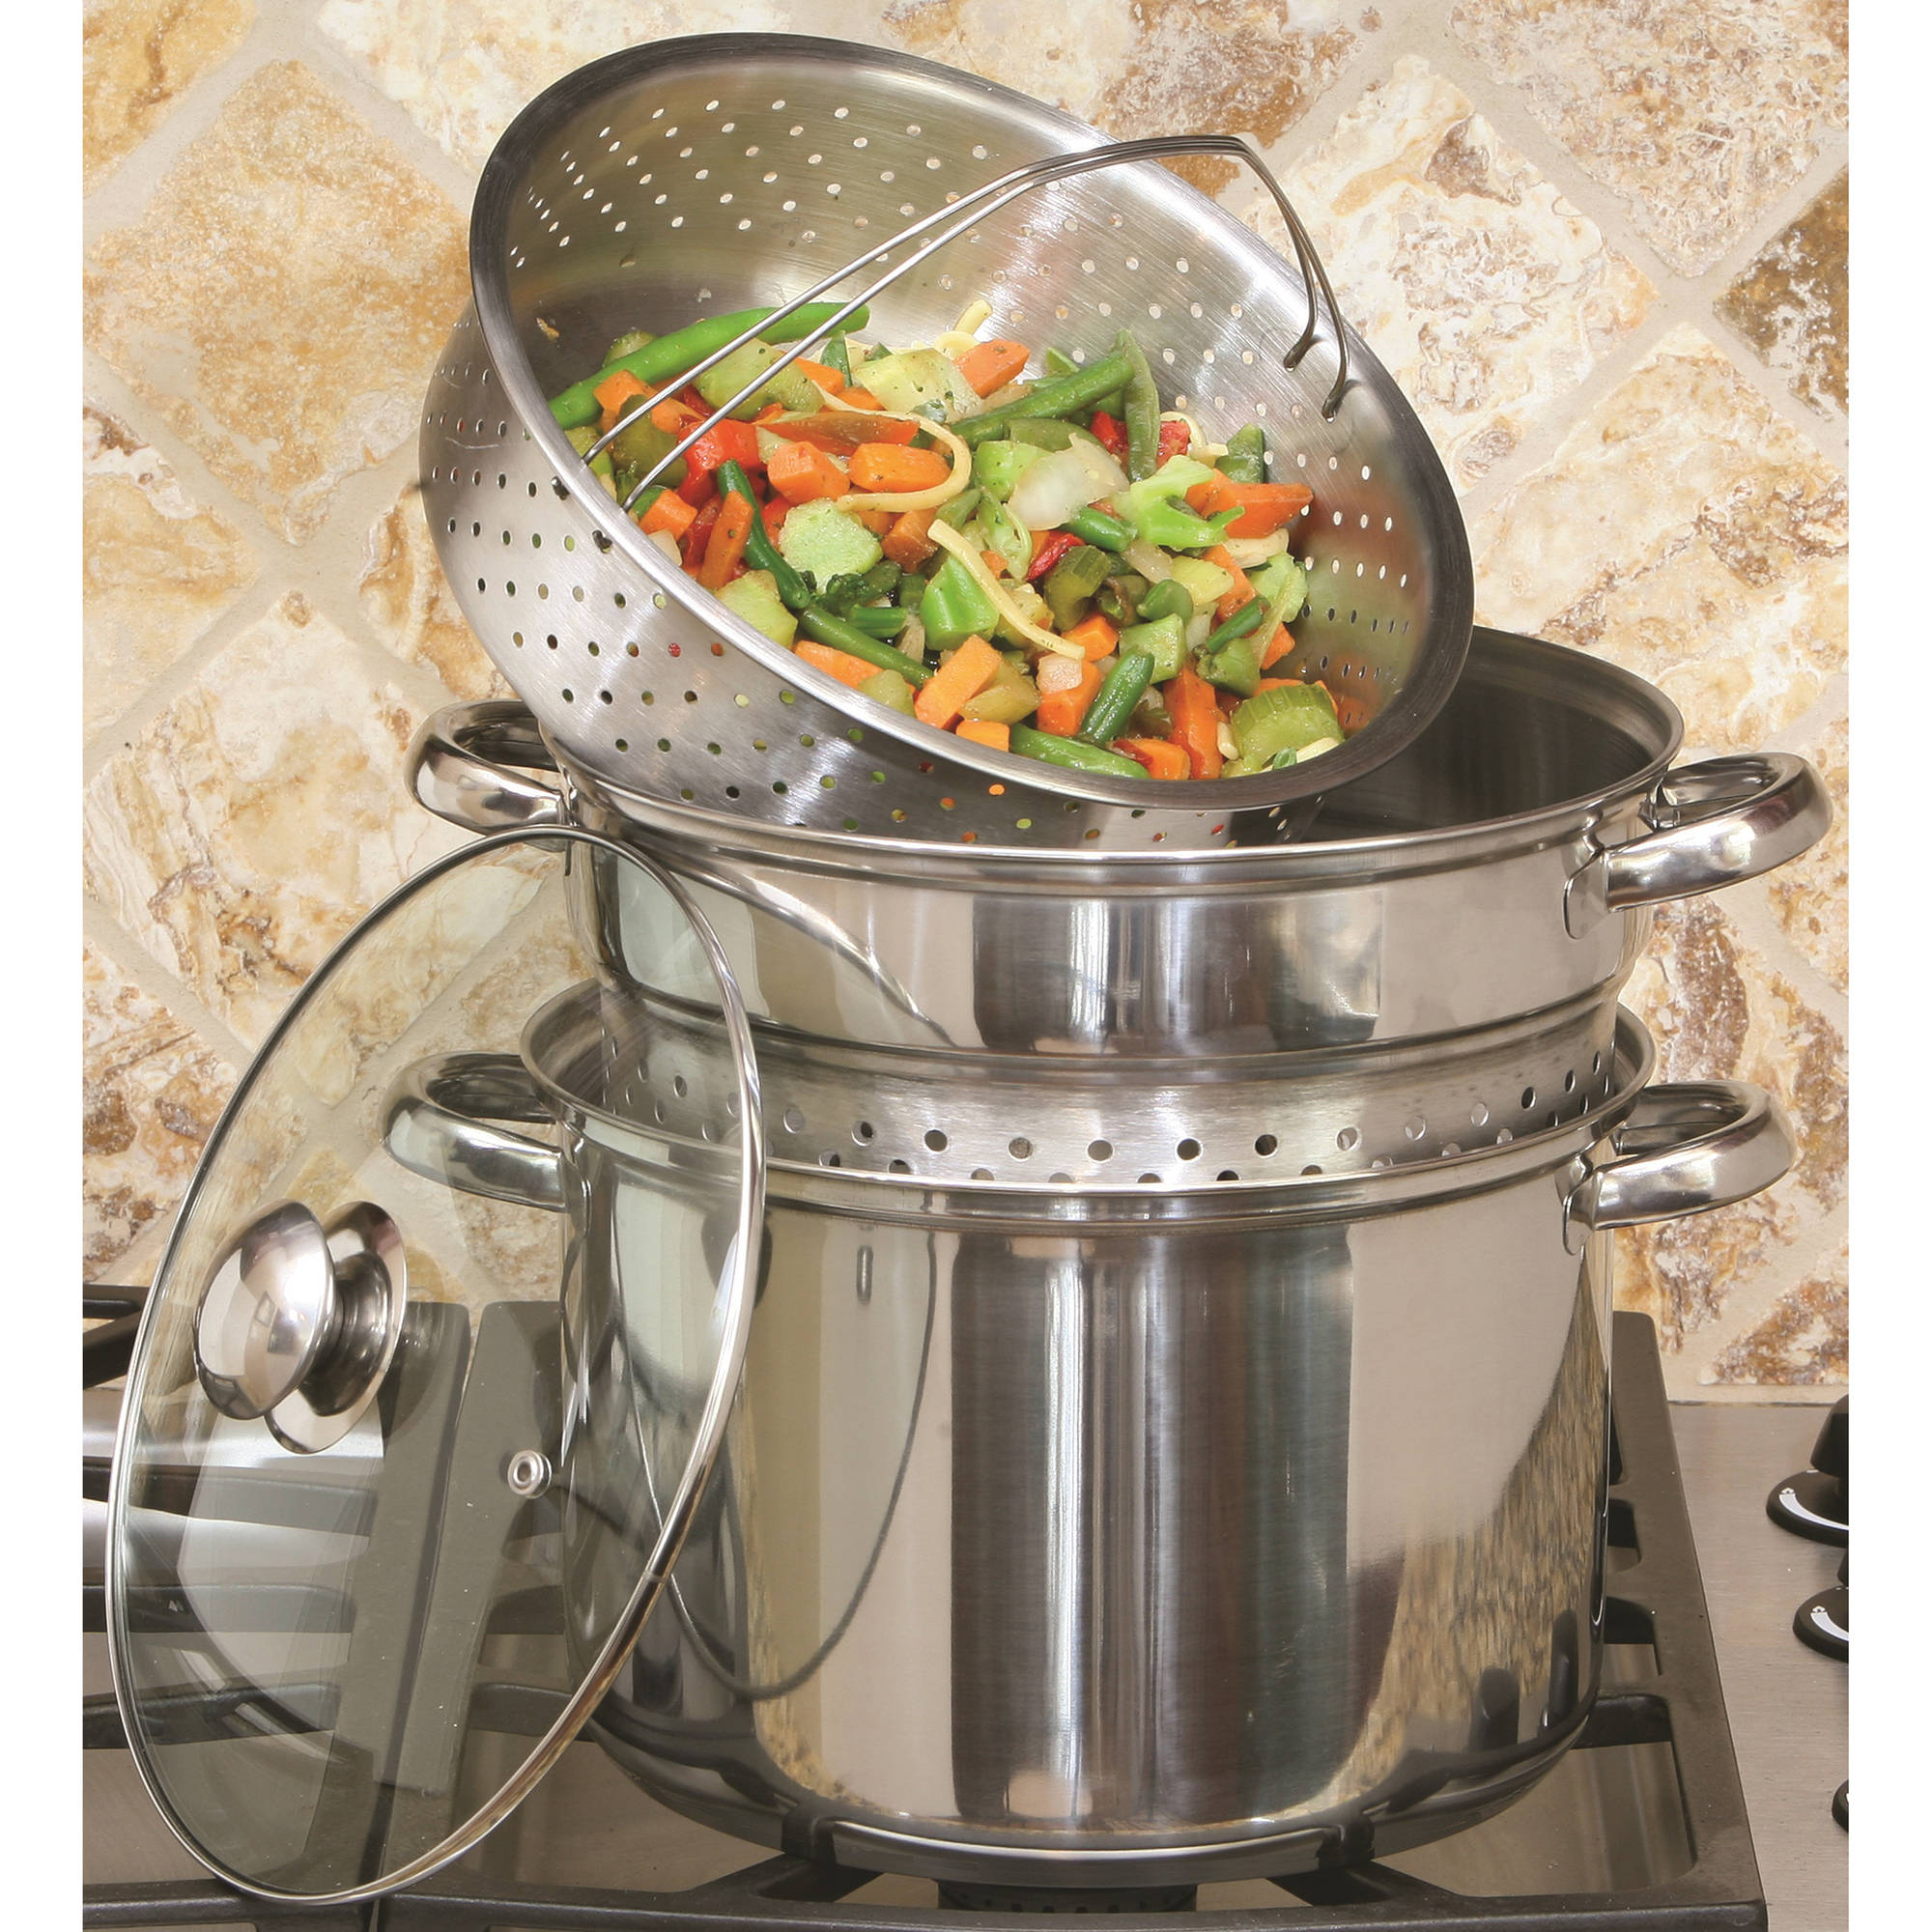 COOK PRO 8-Quart Stainless Steel Multi-Cooker